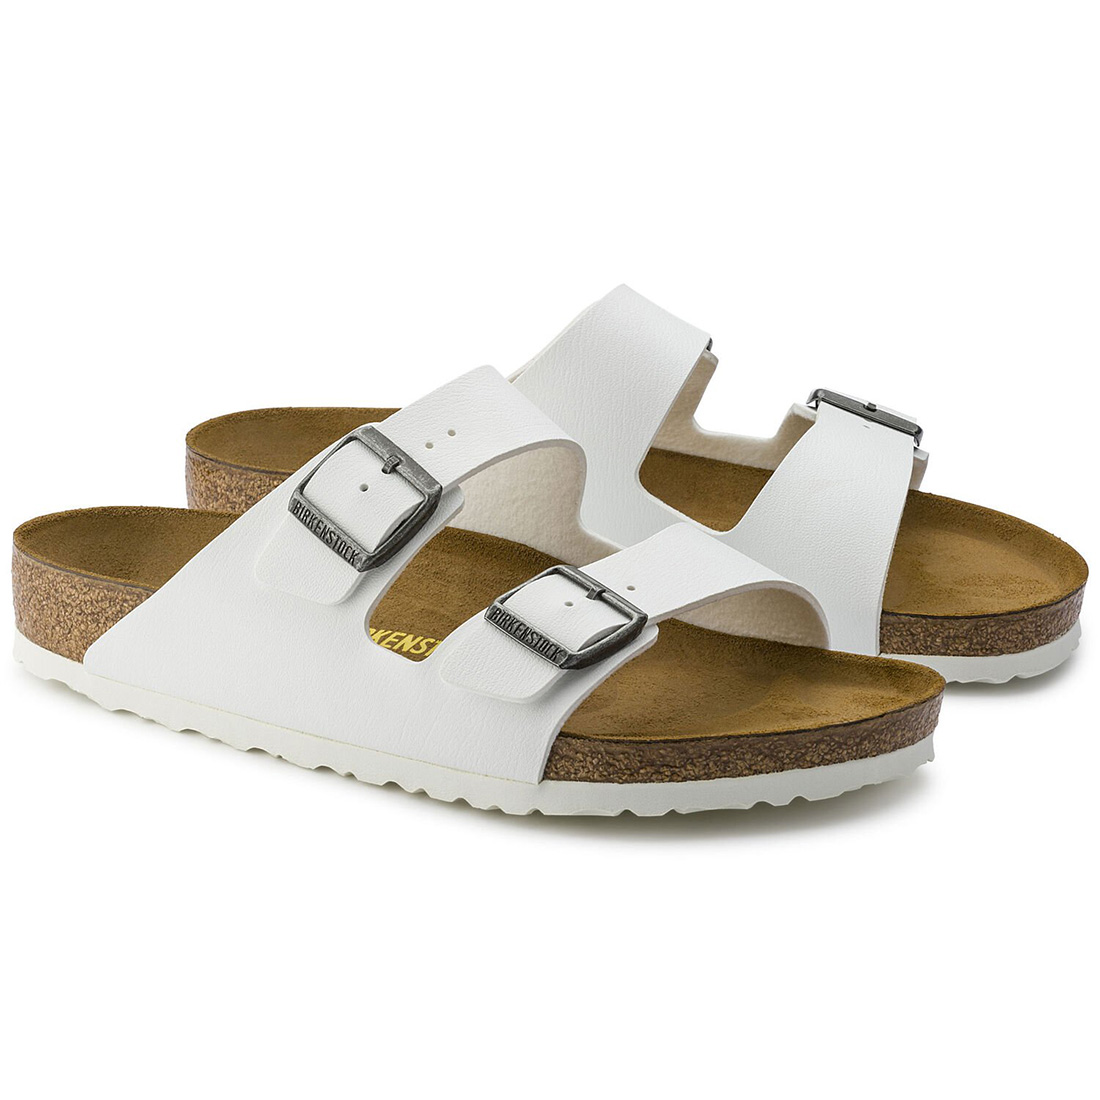 Birkenstock Arizona In White Birko Flor 62139